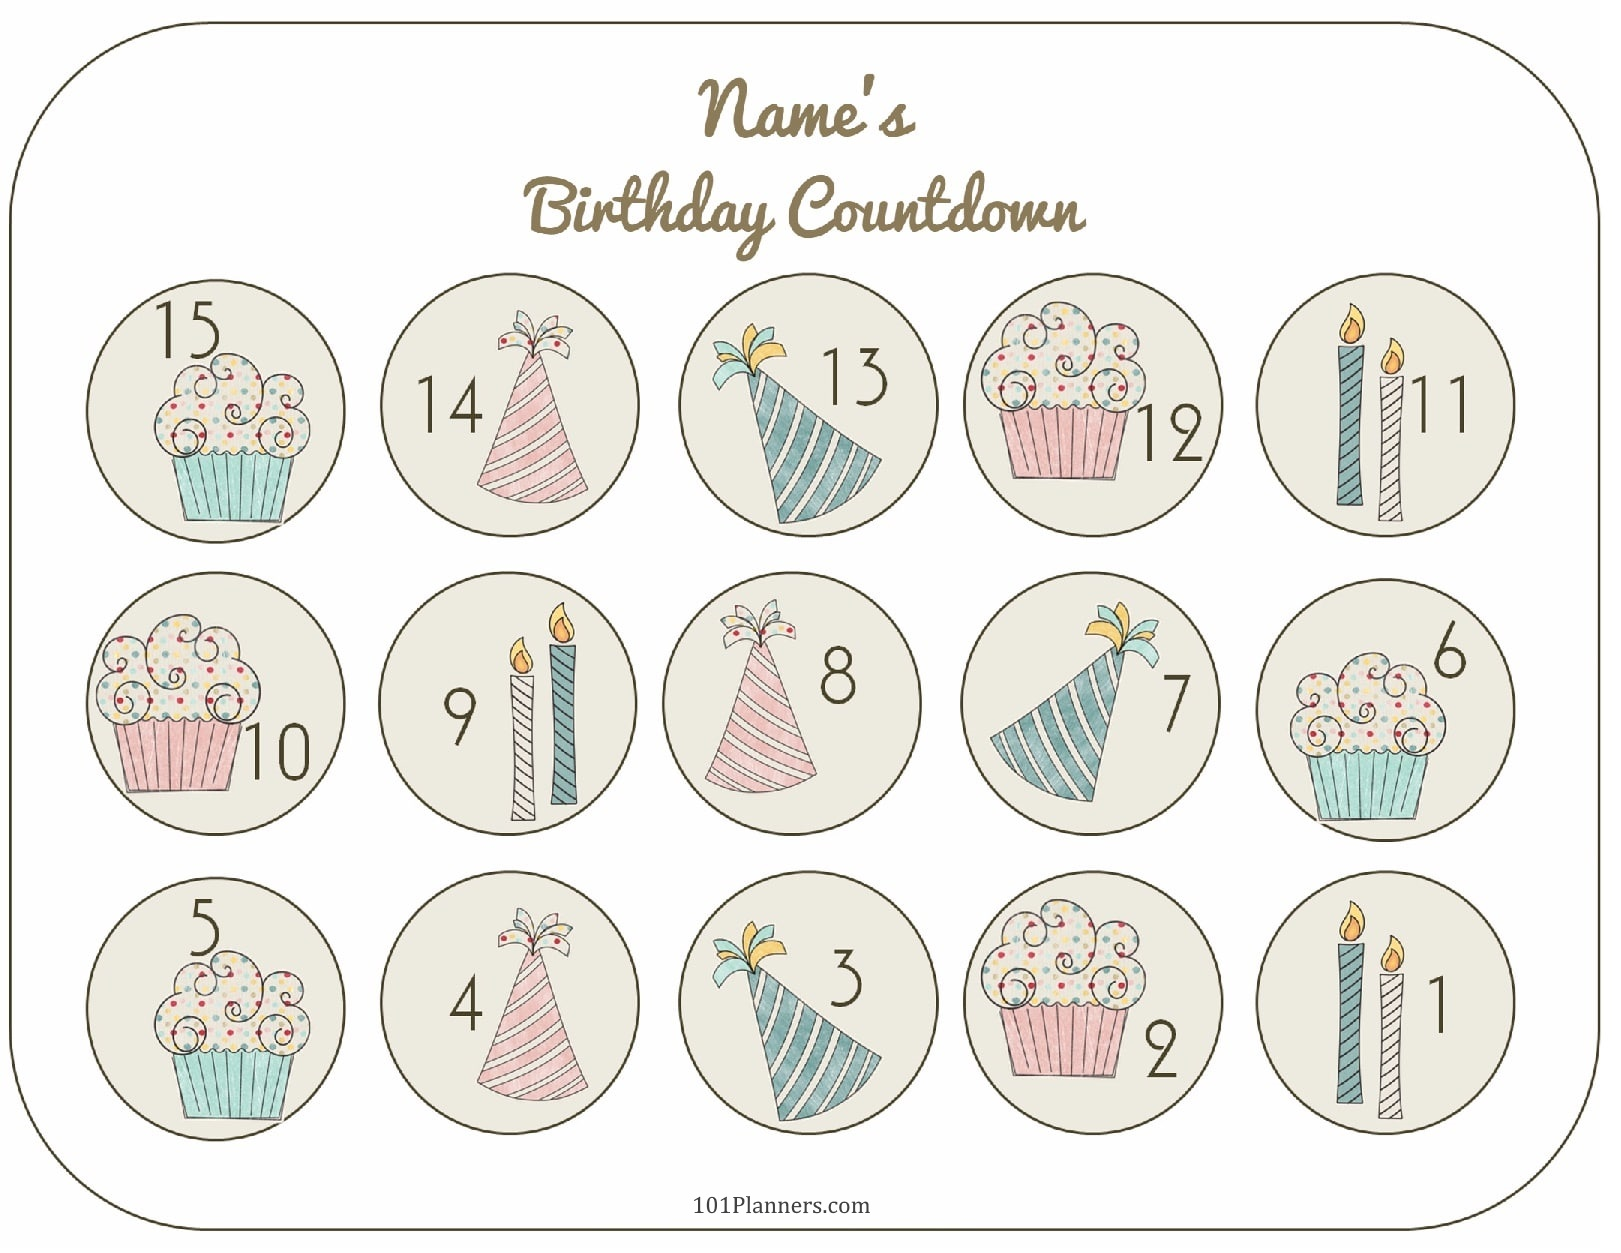 graphic regarding Countdown Printable titled Free of charge Printable Birthday Countdown Personalize On the net